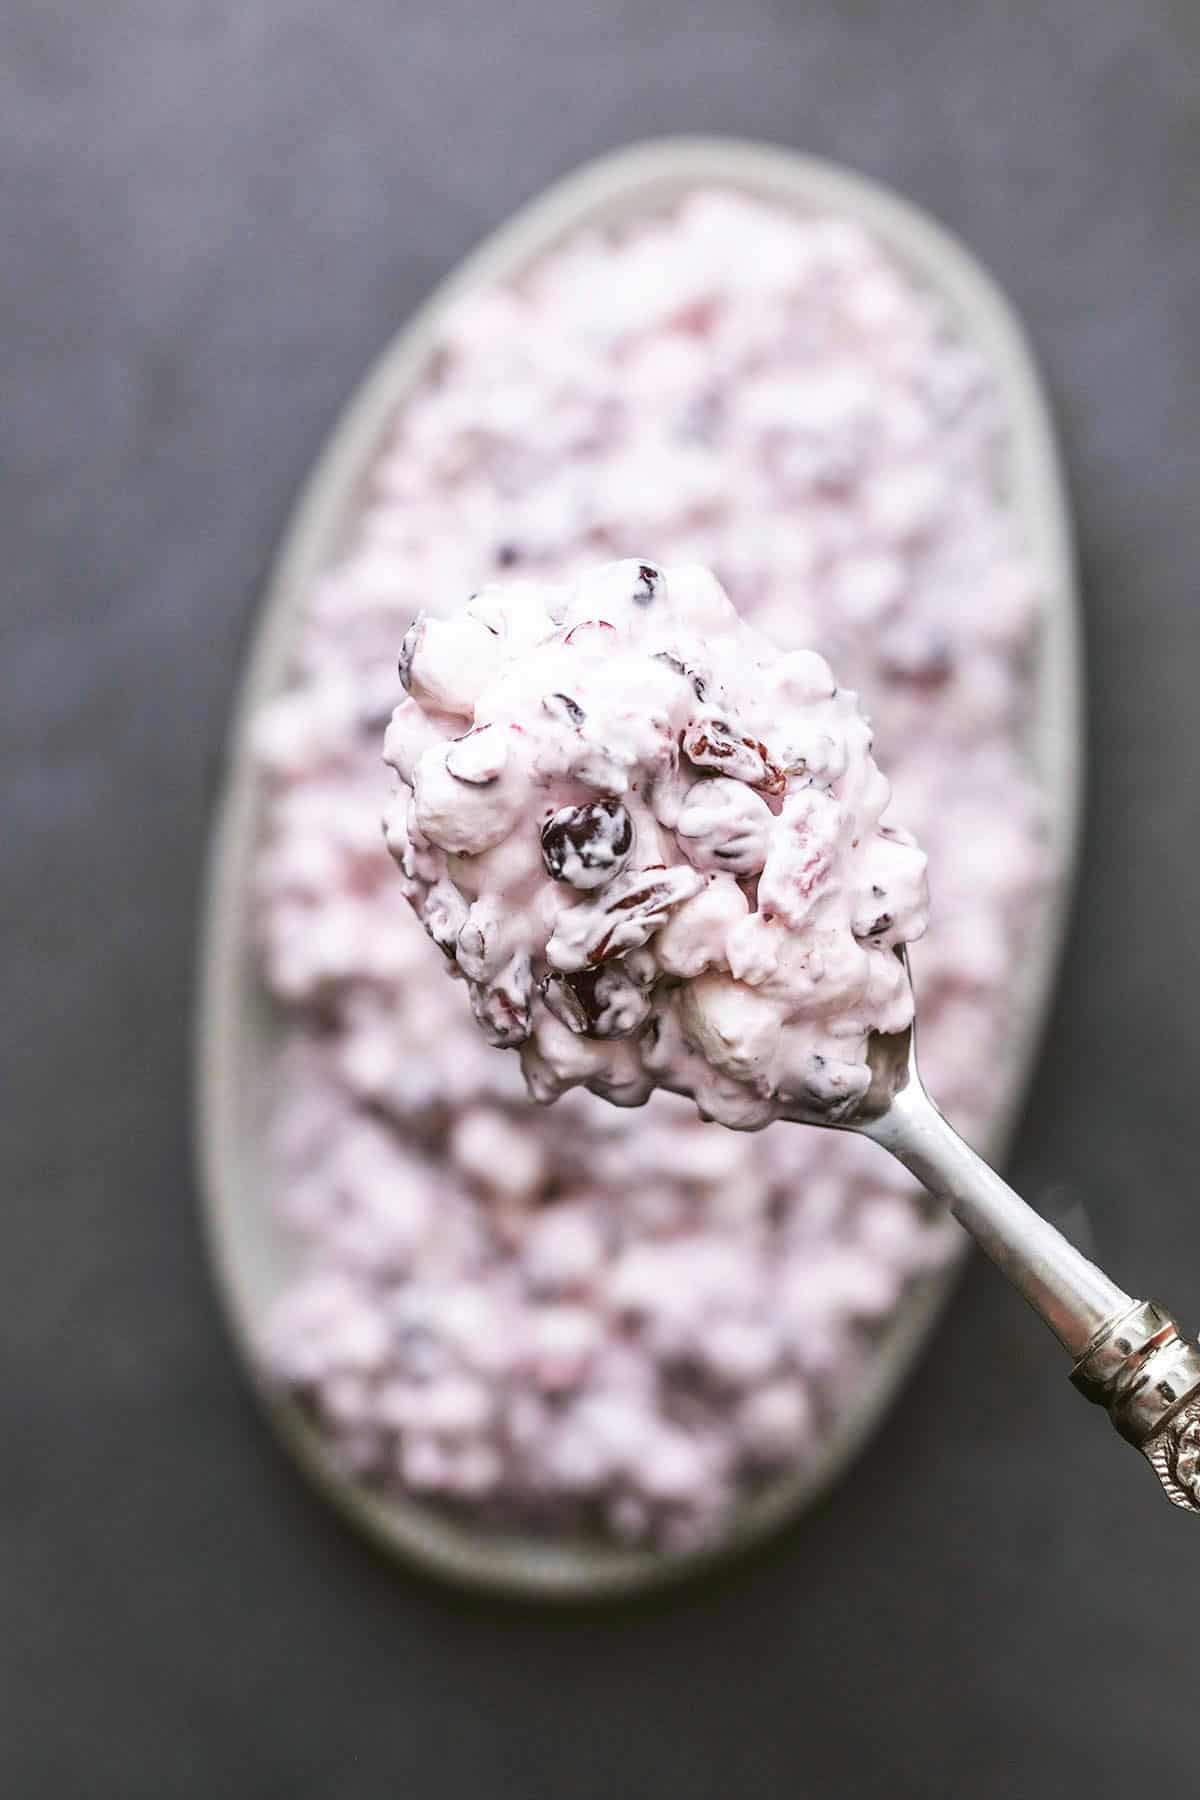 serving spoon full of marshmallow and cranberry fluff above more salad in a platter